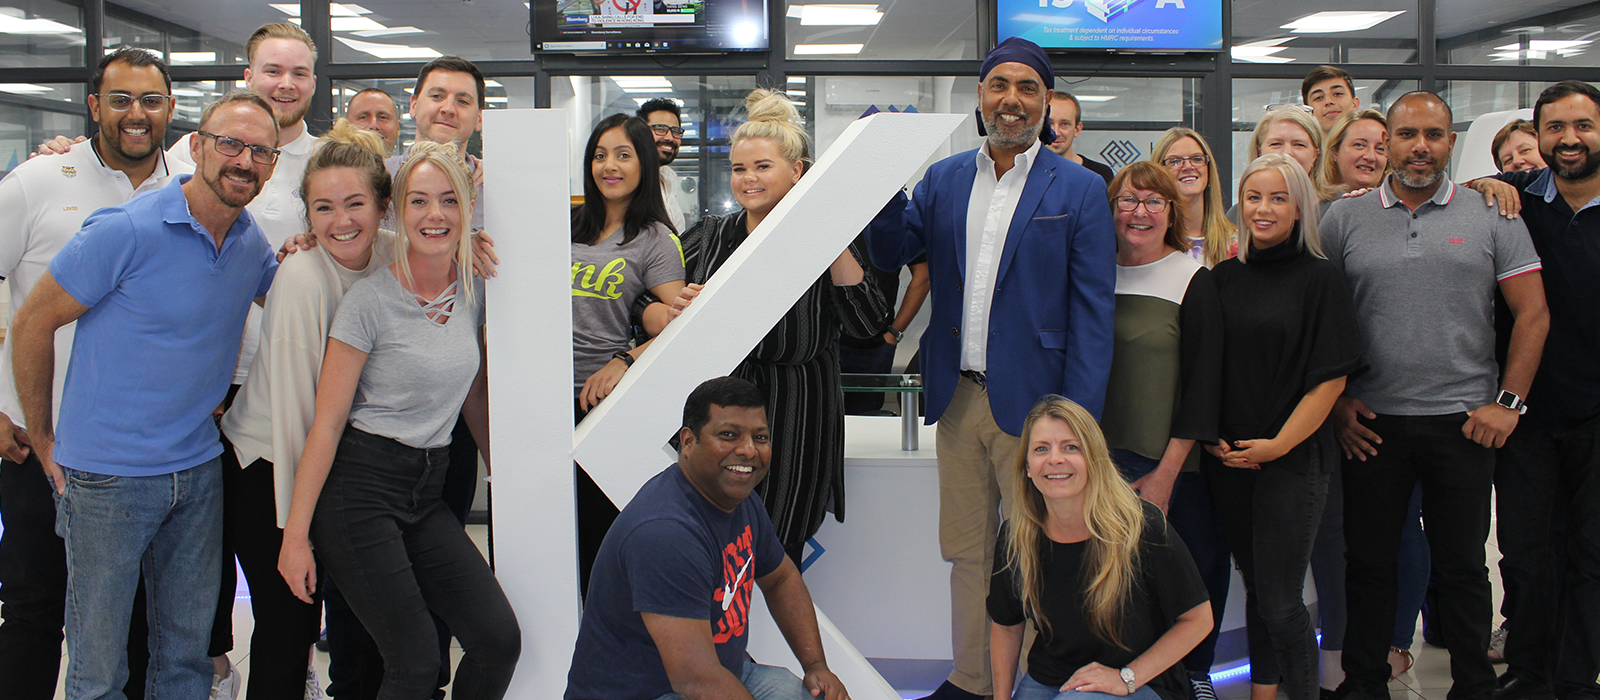 The Kuflink team posing with the big K.